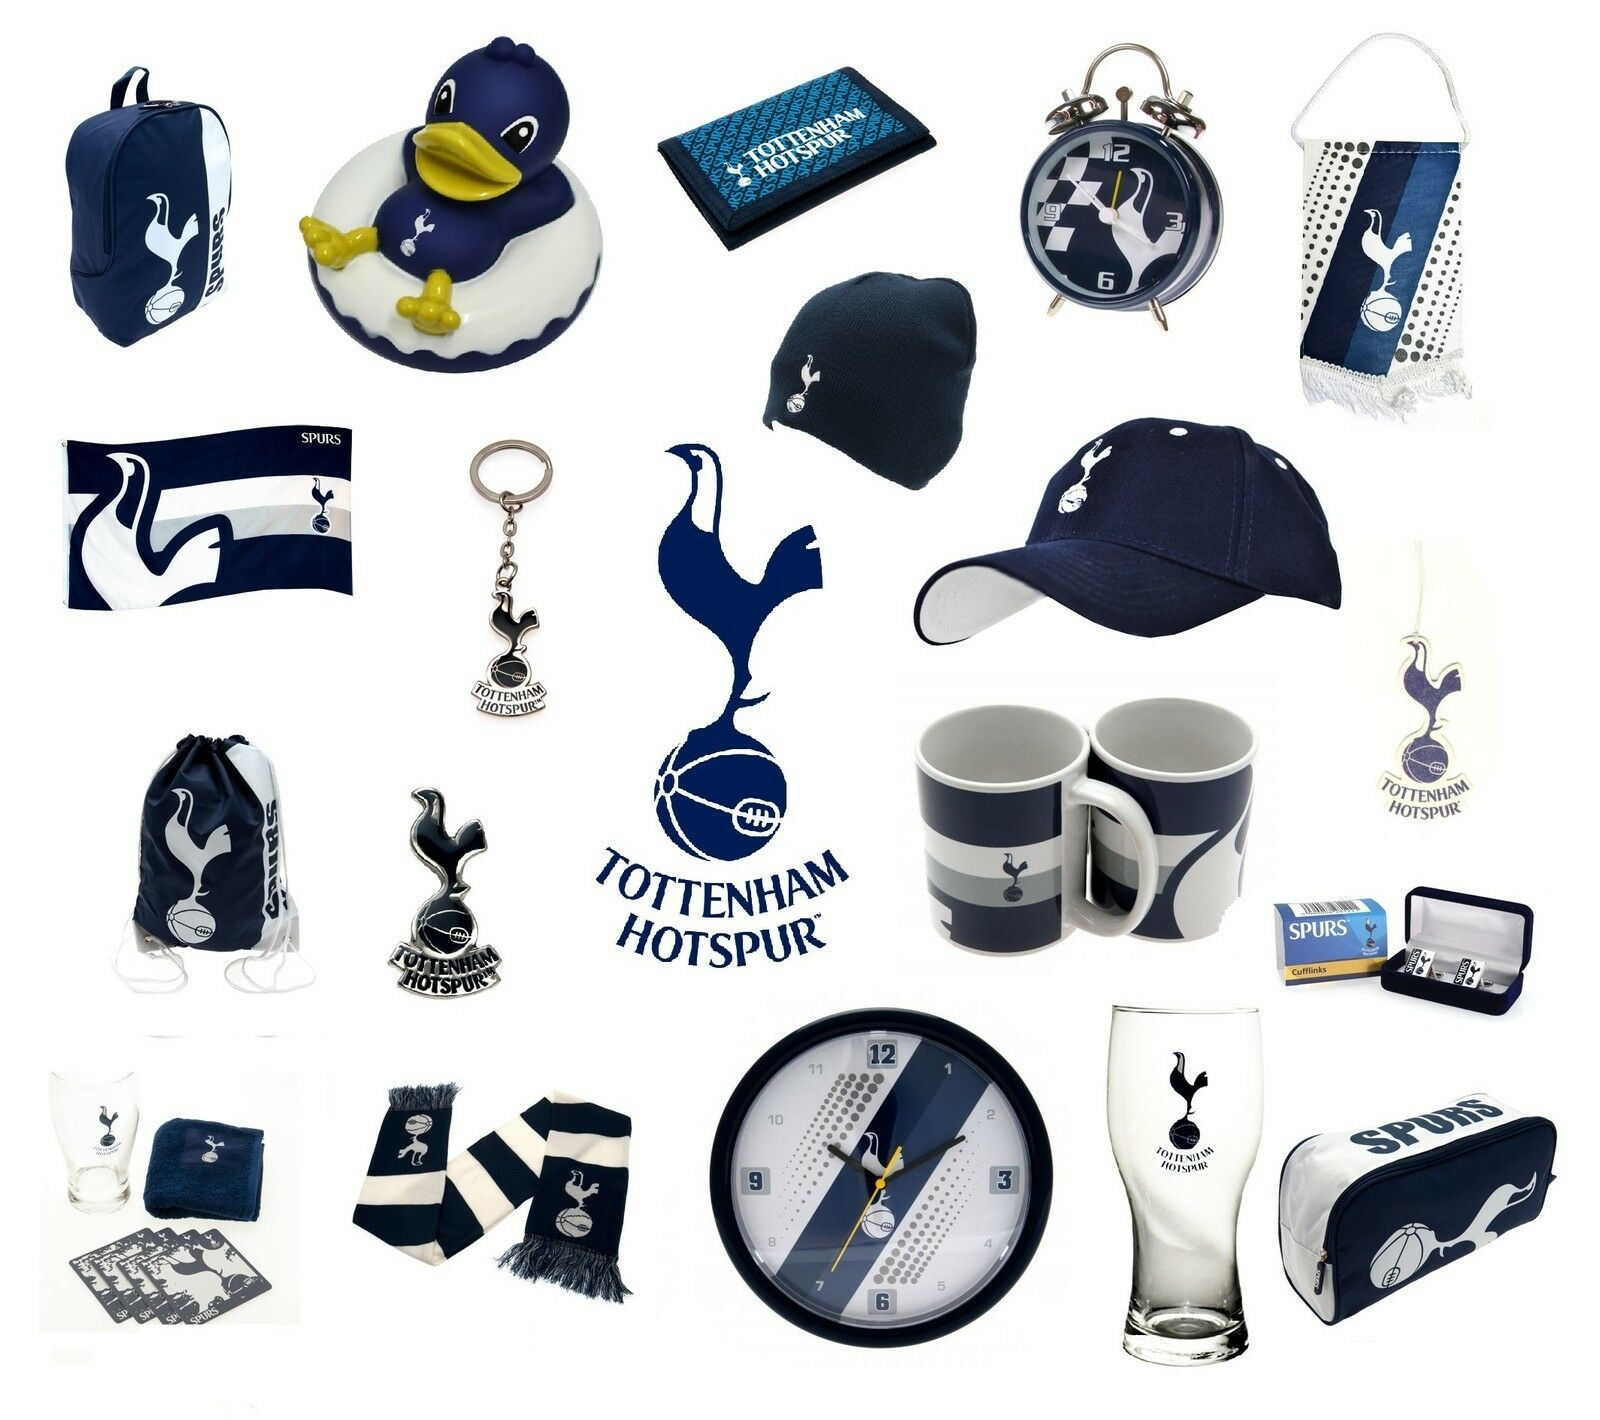 Tottenham: SPURS - Official Football Club